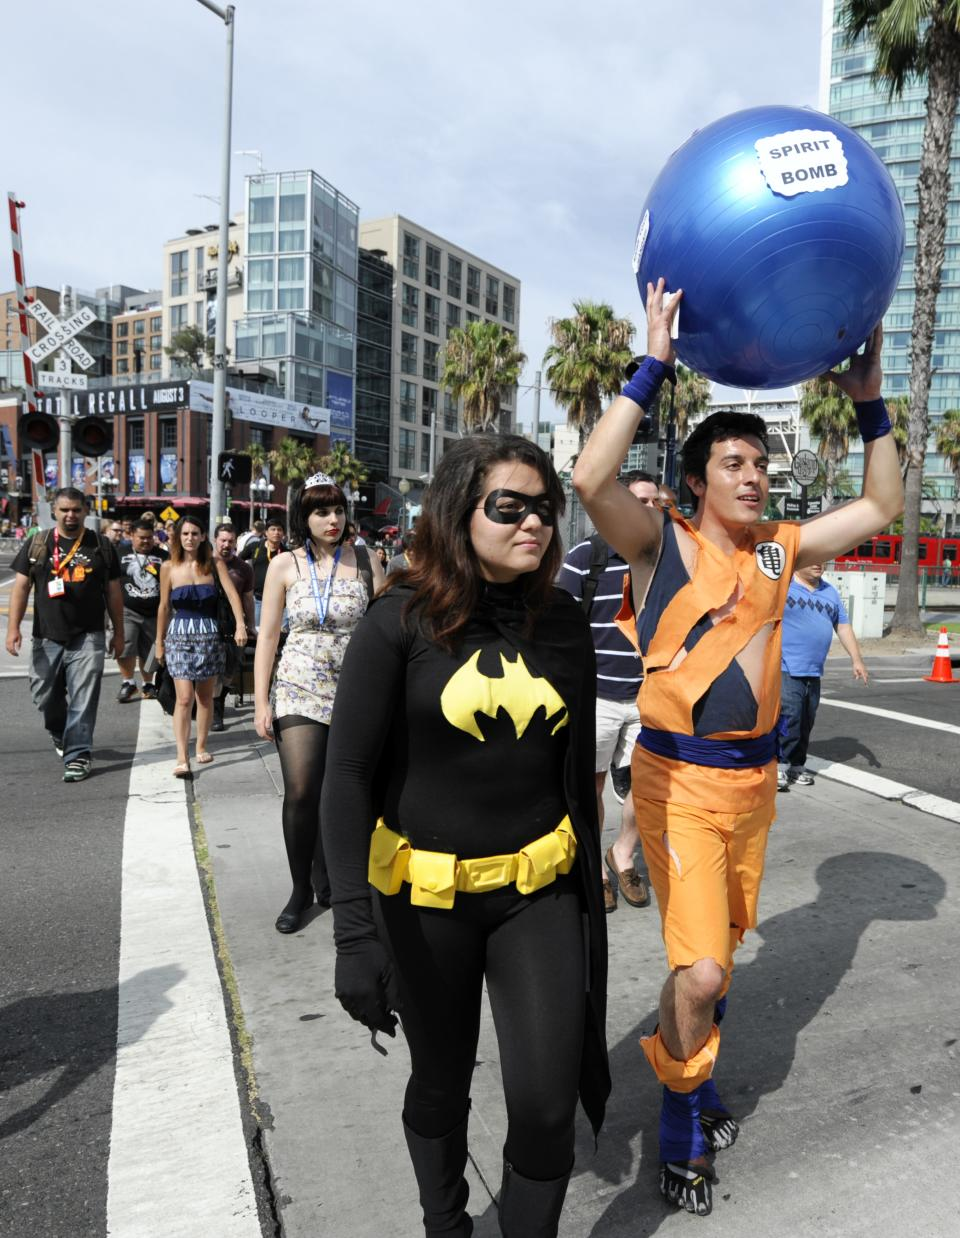 Fans arrive at the San Diego Convention Center before preview night at Comic - Con on Wednesday July 11, 2012, in San Diego.  (Photo by Denis Poroy/Invision/AP)